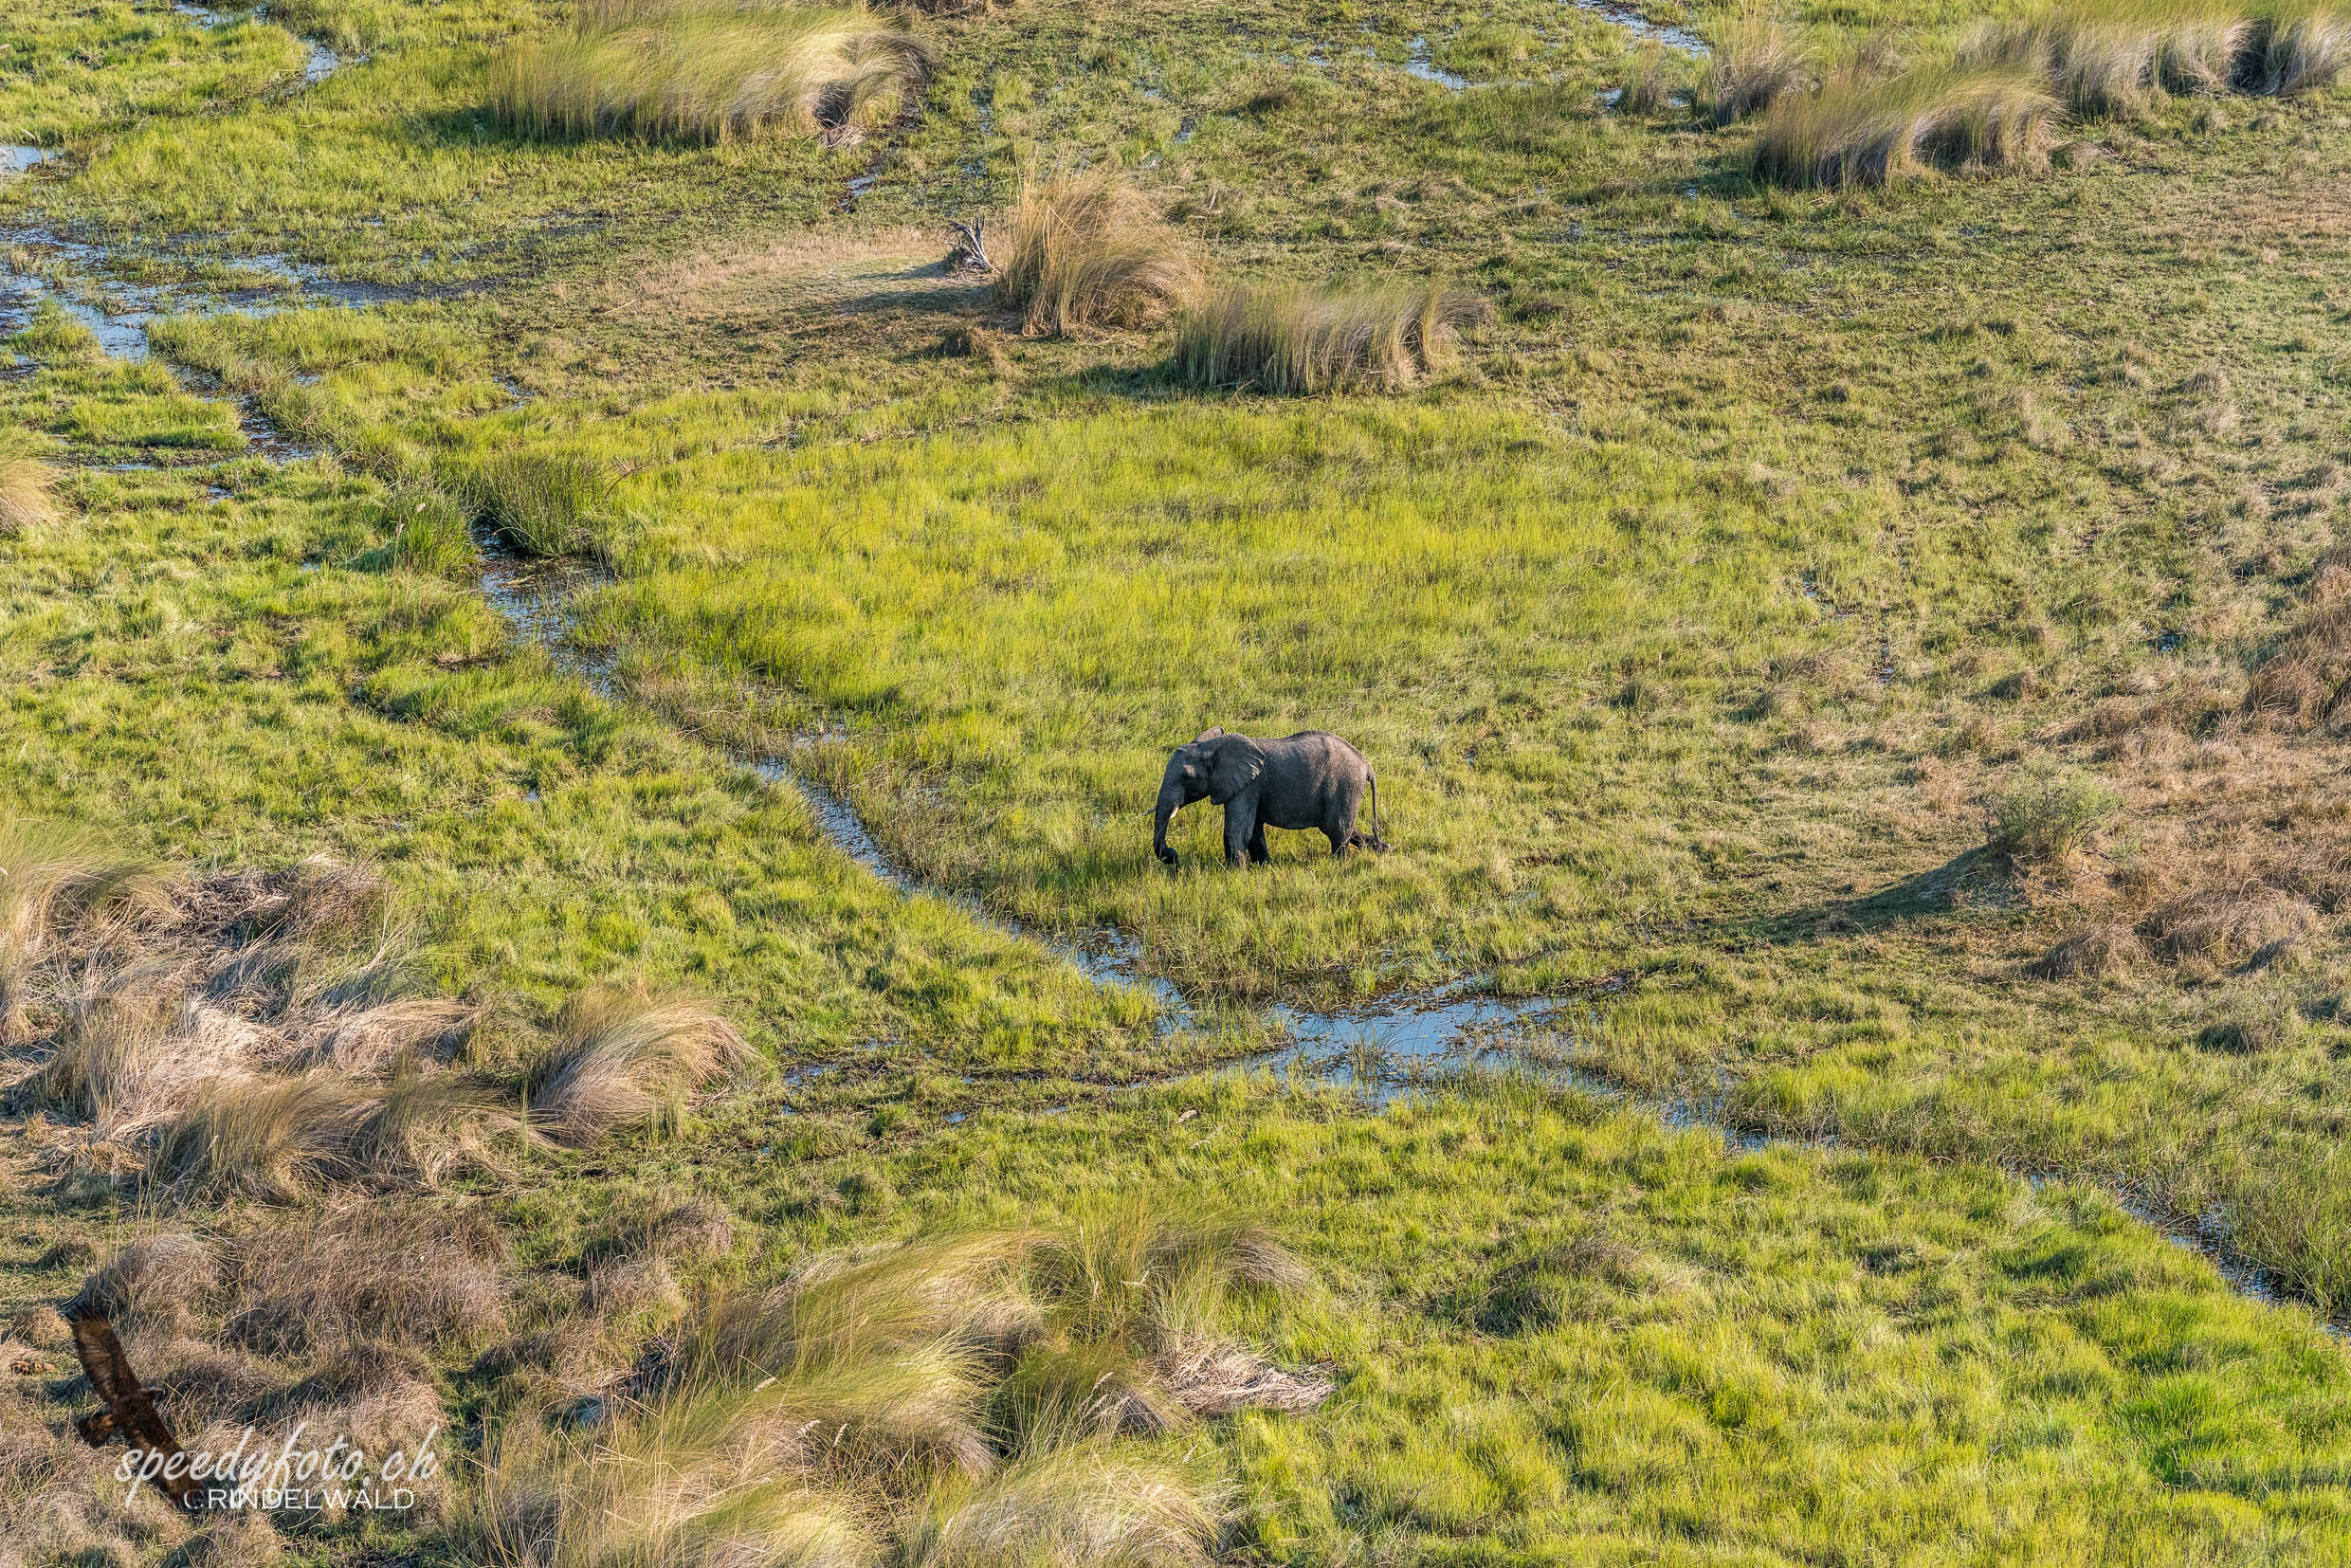 The lonely Elefant - Arial View